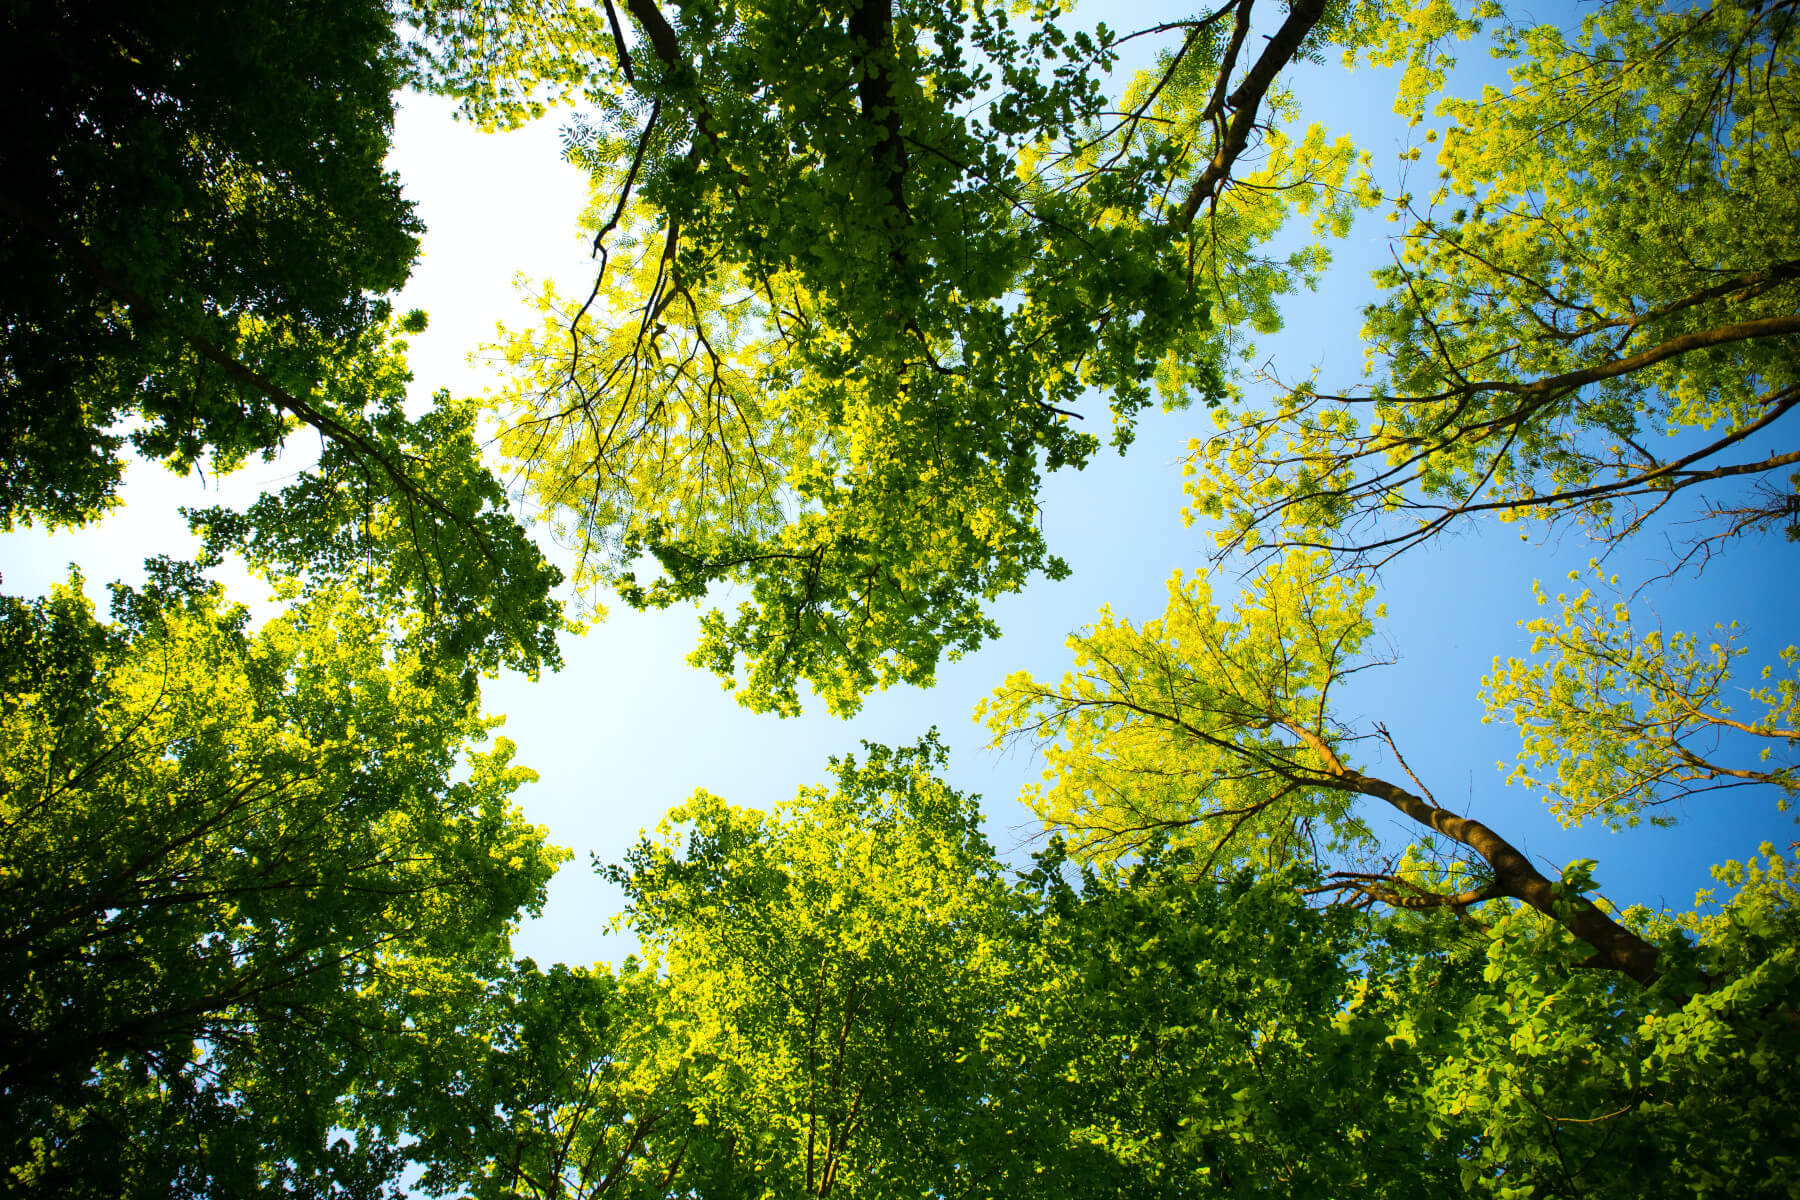 Eco-friendly progress - upward view of trees on blue skies